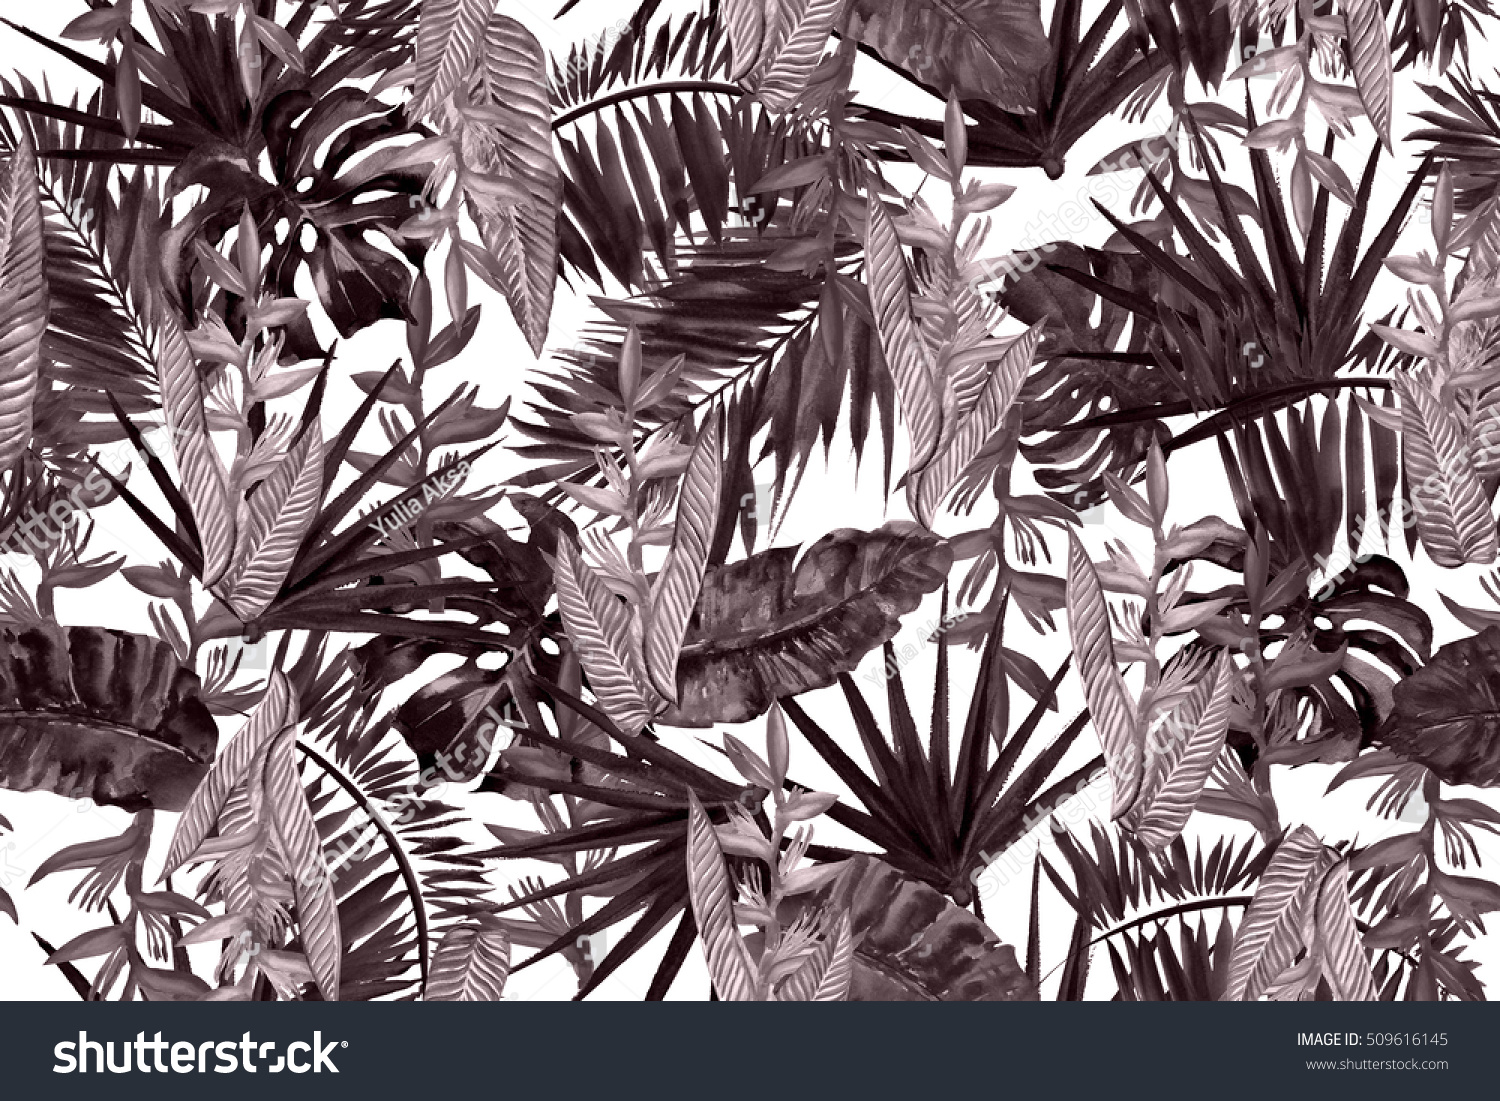 Floral pattern leaves background brown color watercolor painting tropical leaves illustration seamless pattern